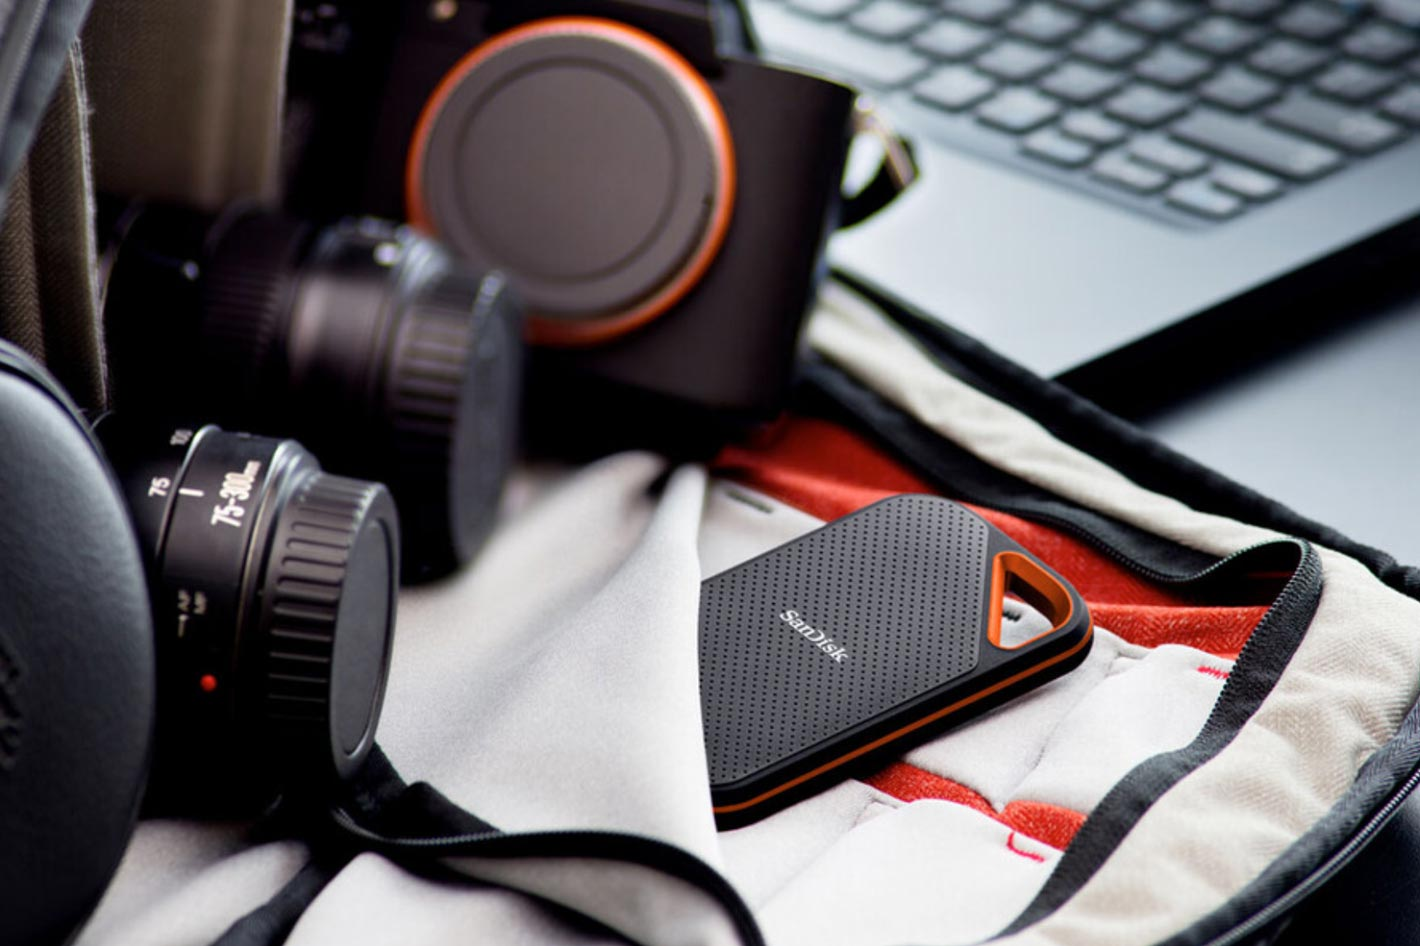 New SanDisk Extreme portable SSDs are nearly 2x faster